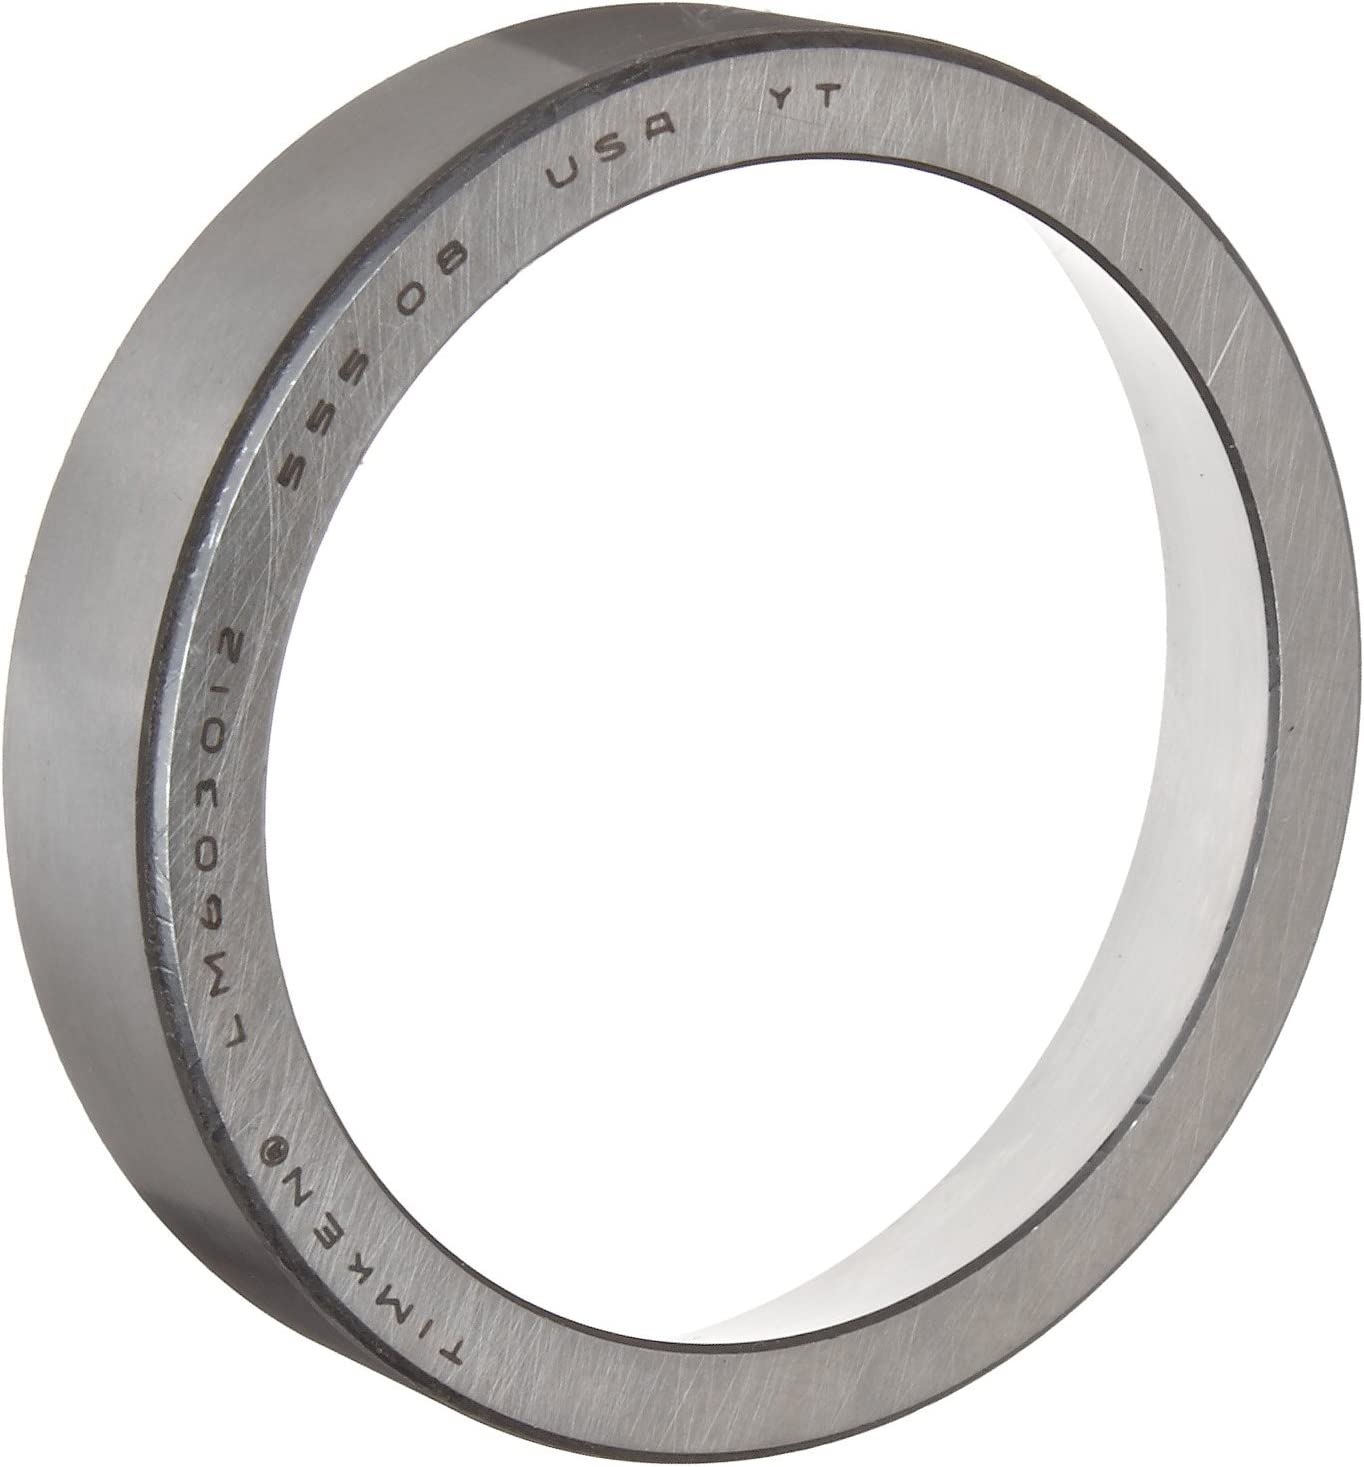 Timken 354 Tapered Roller Bearing Cup